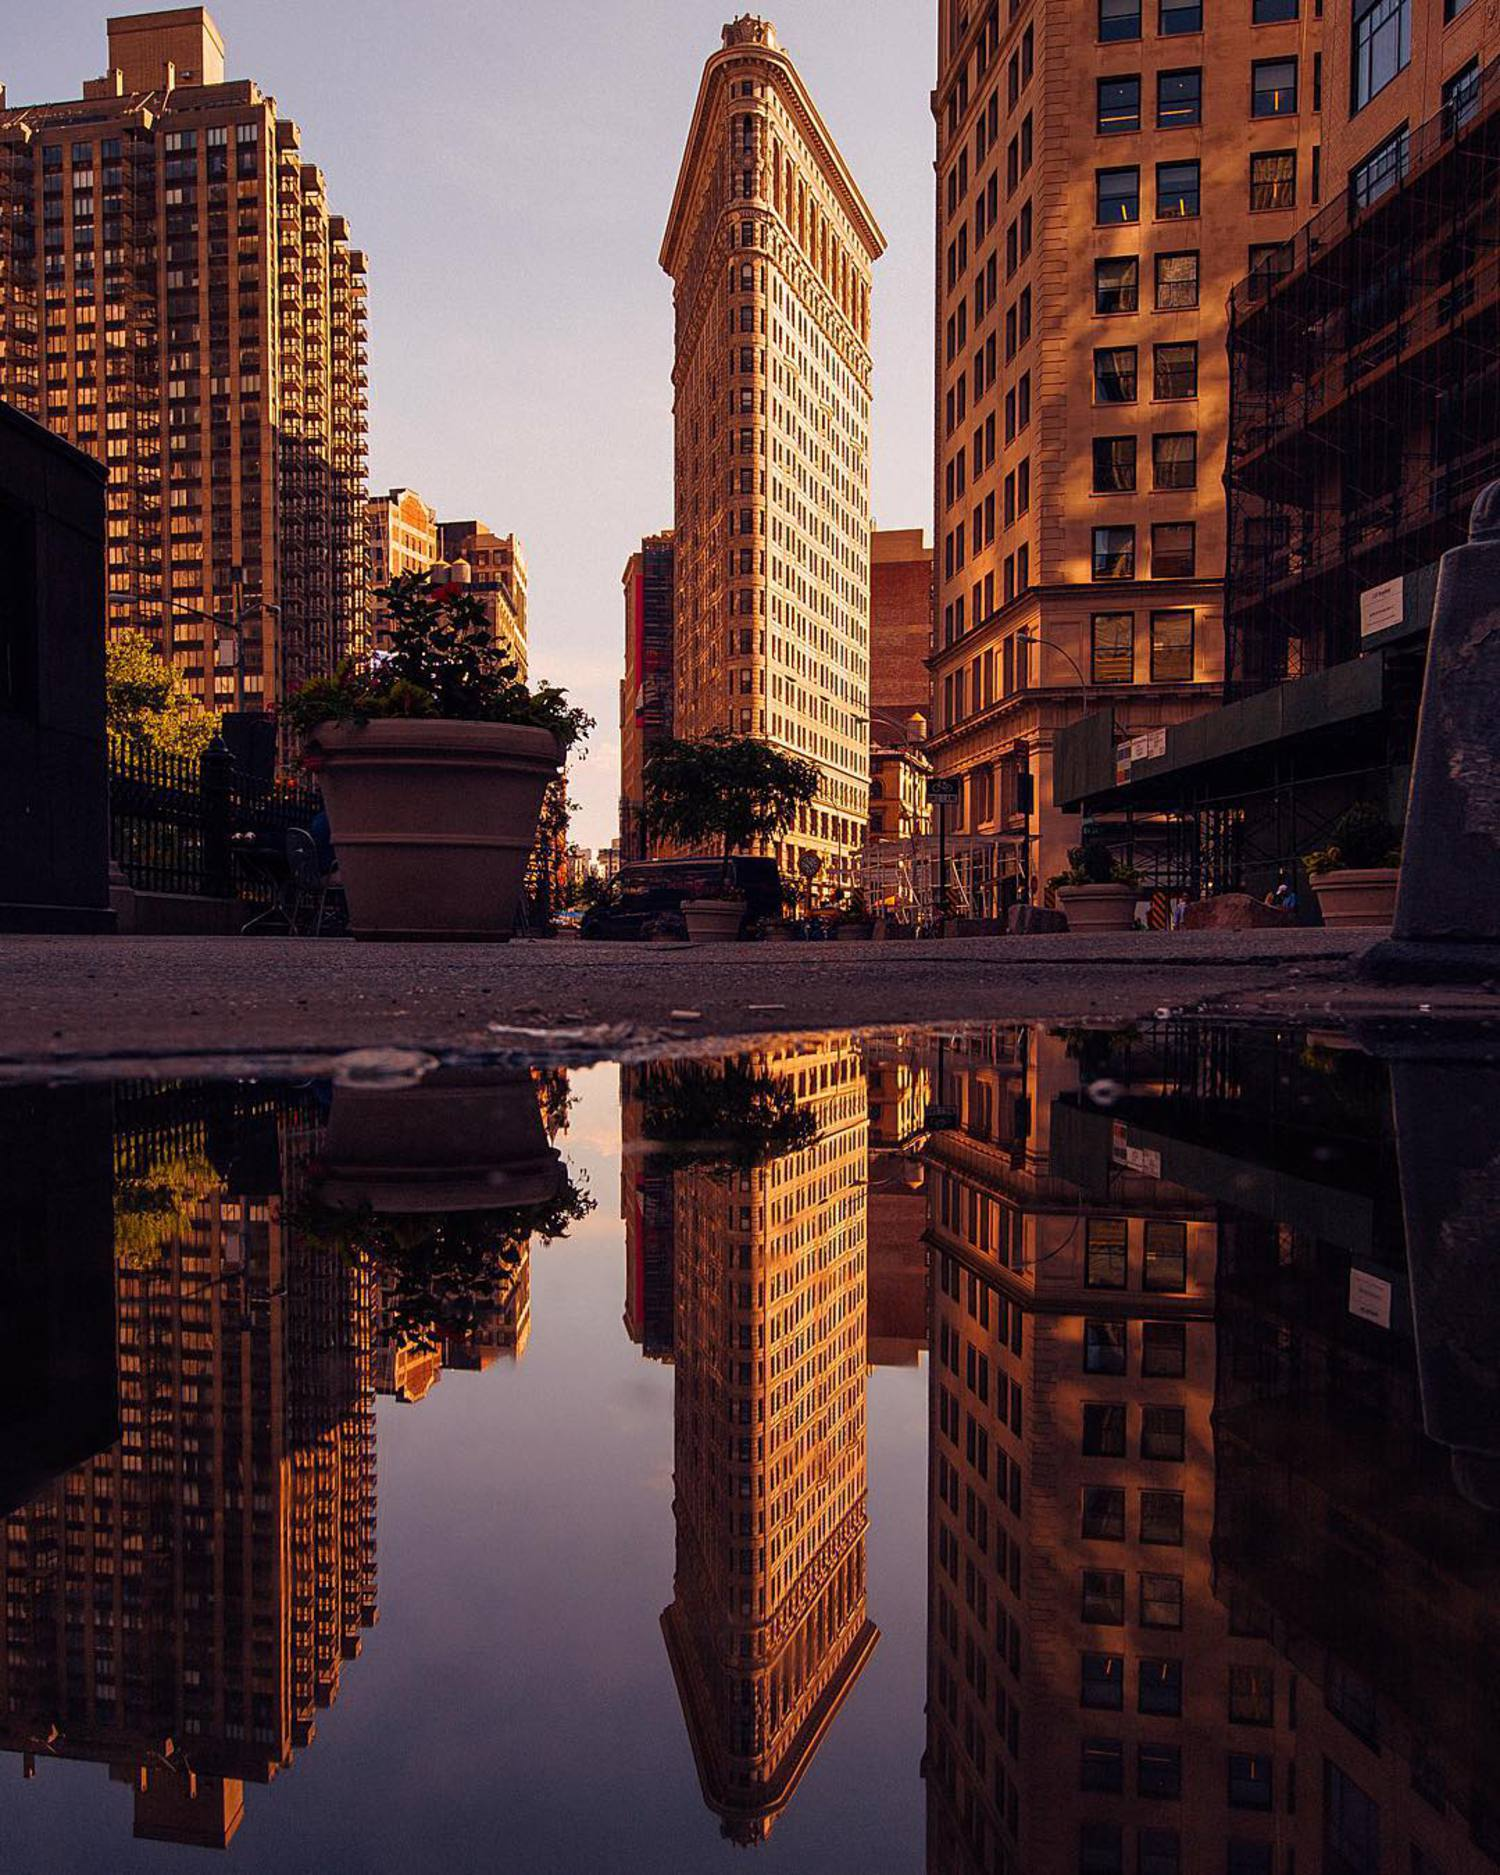 • Flatiron •  Who has fun plans this weekend? ❤️ Here's a photo of my favourite NYC building at sunset. Such a beautiful piece of architecture!  @beautifuldestinations #beautifuldestinations  @Canonuk 5D mk3 w/ 16-35mm f/4